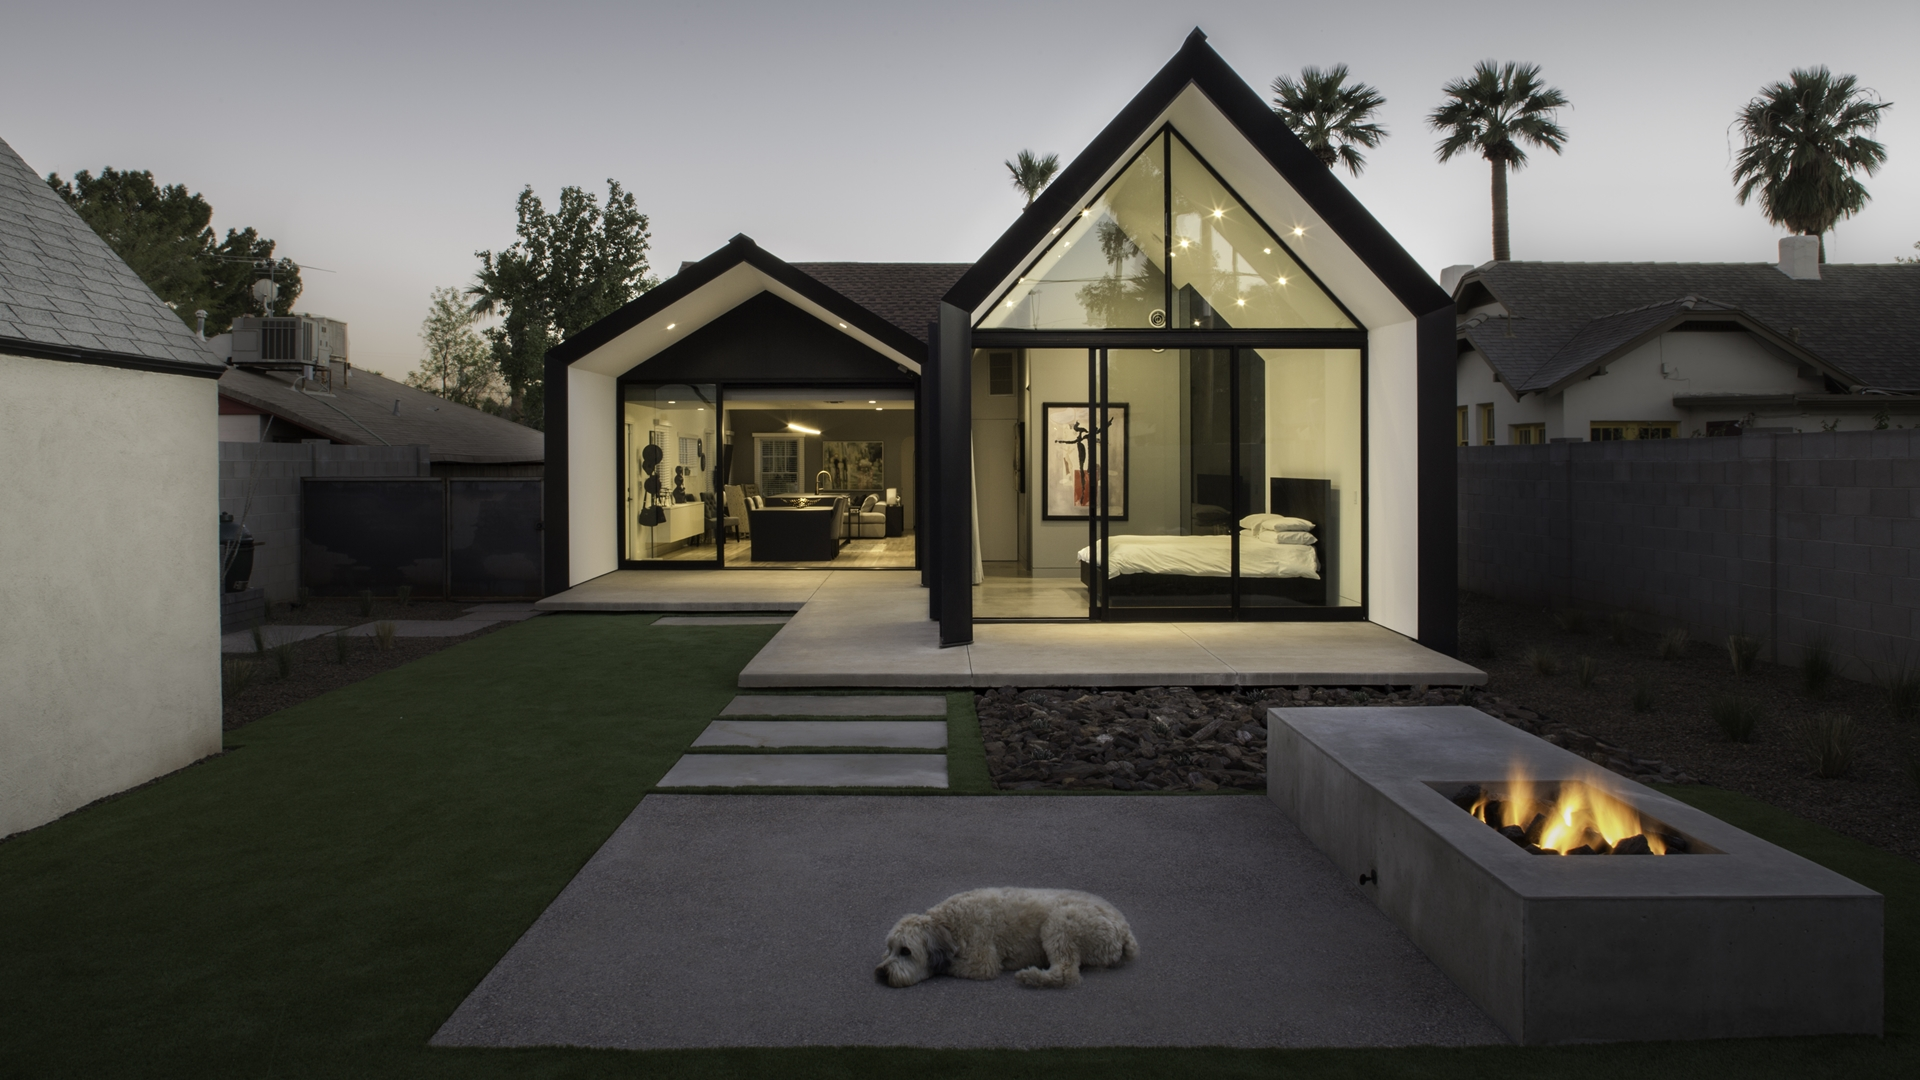 House Extensions: Amazing Small Home Renovation In Phoenix